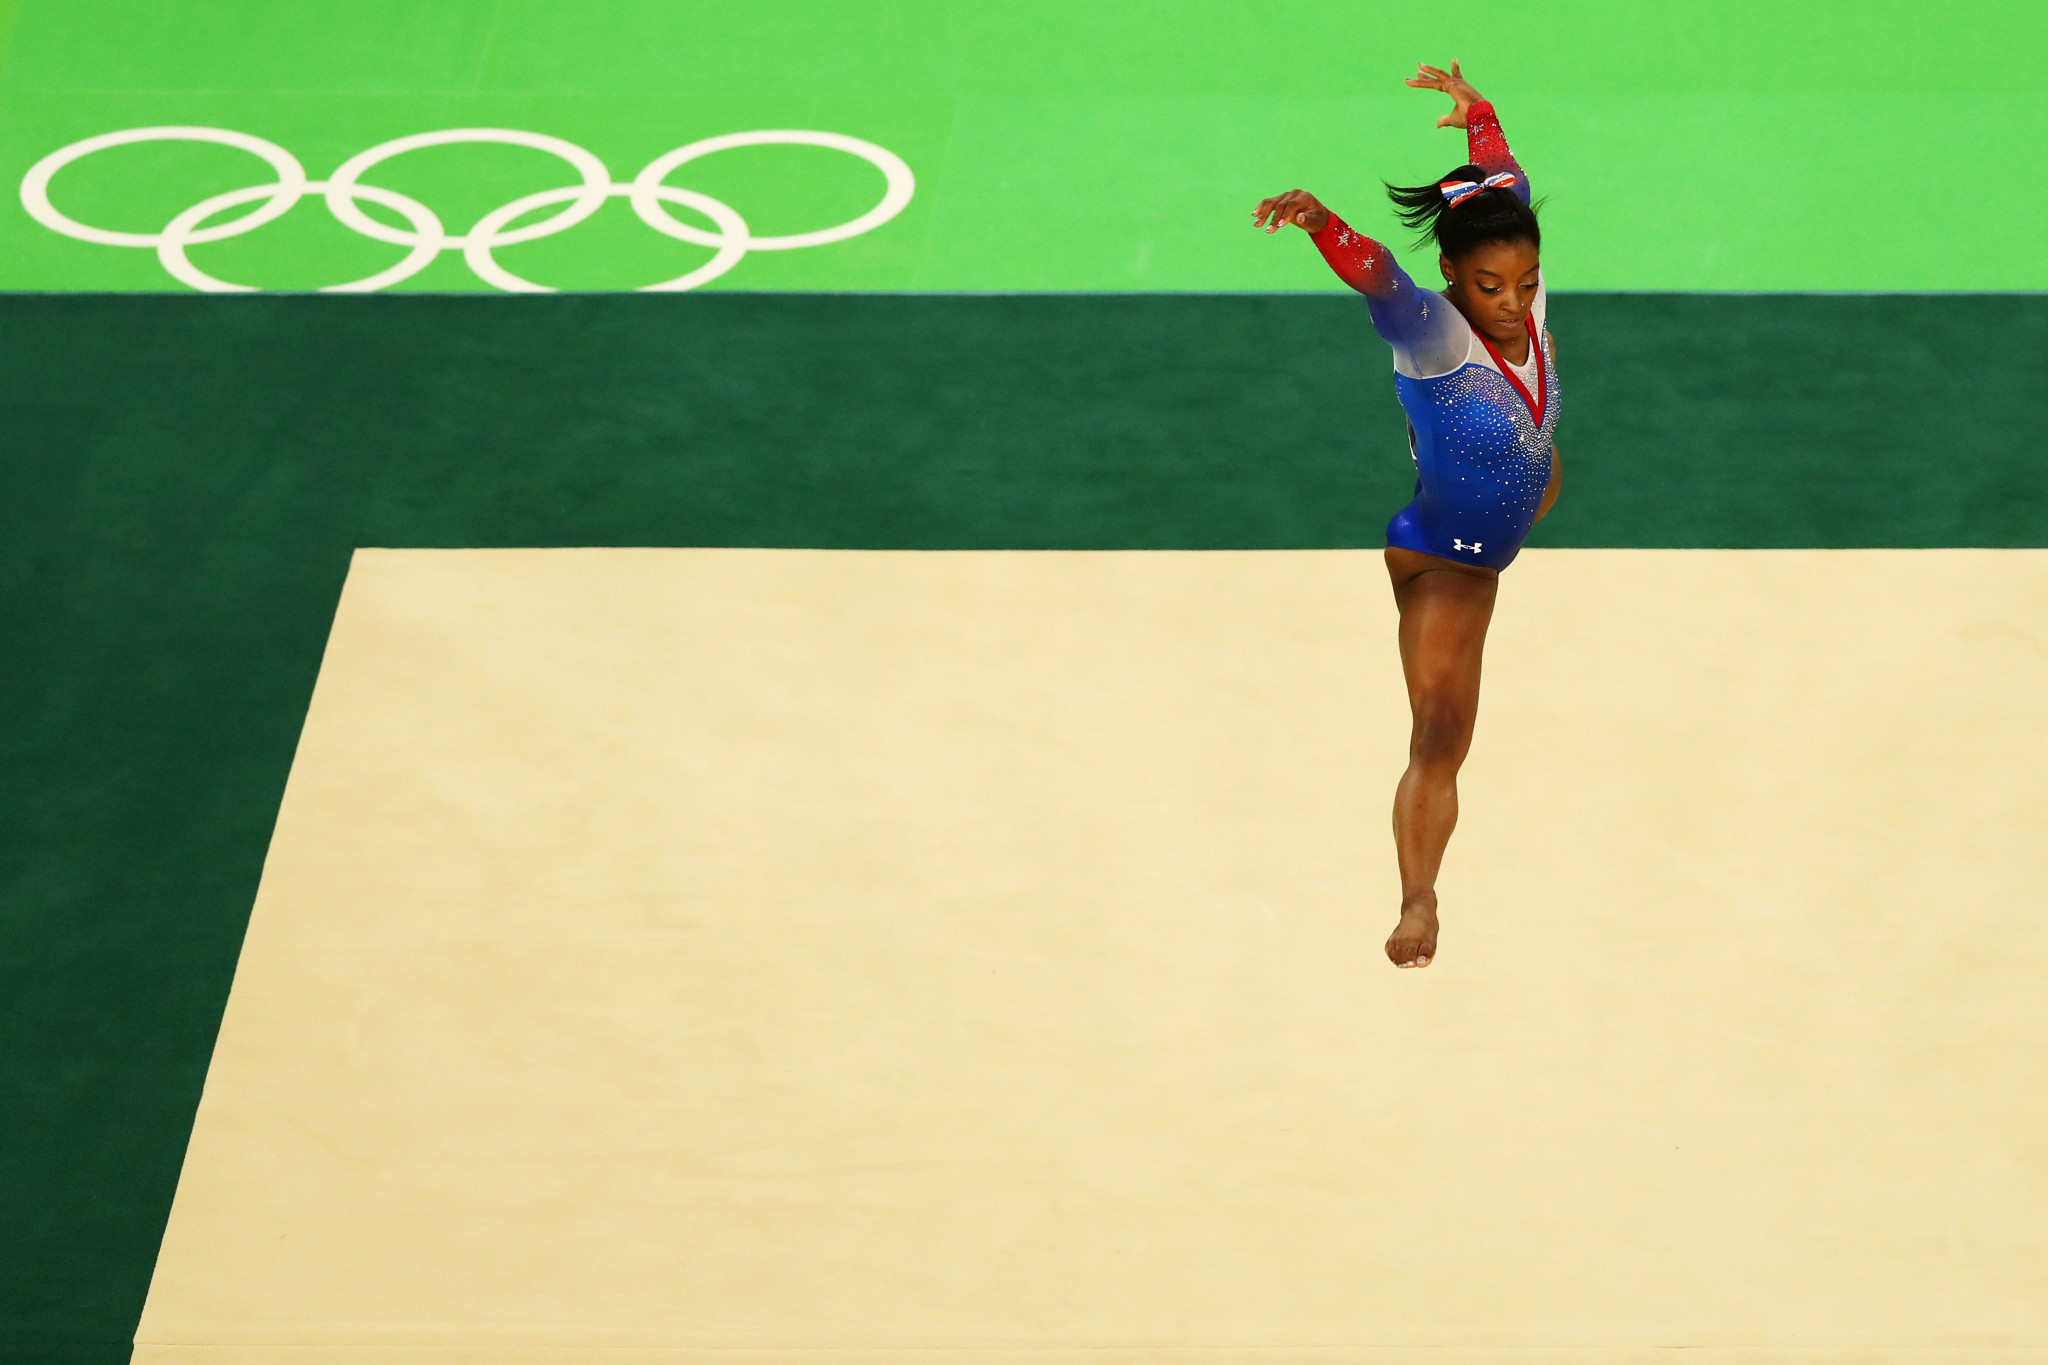 Simone Biles is a four-time Olympic gold medallist, earning all four titles at Rio 2016 ©Getty Images